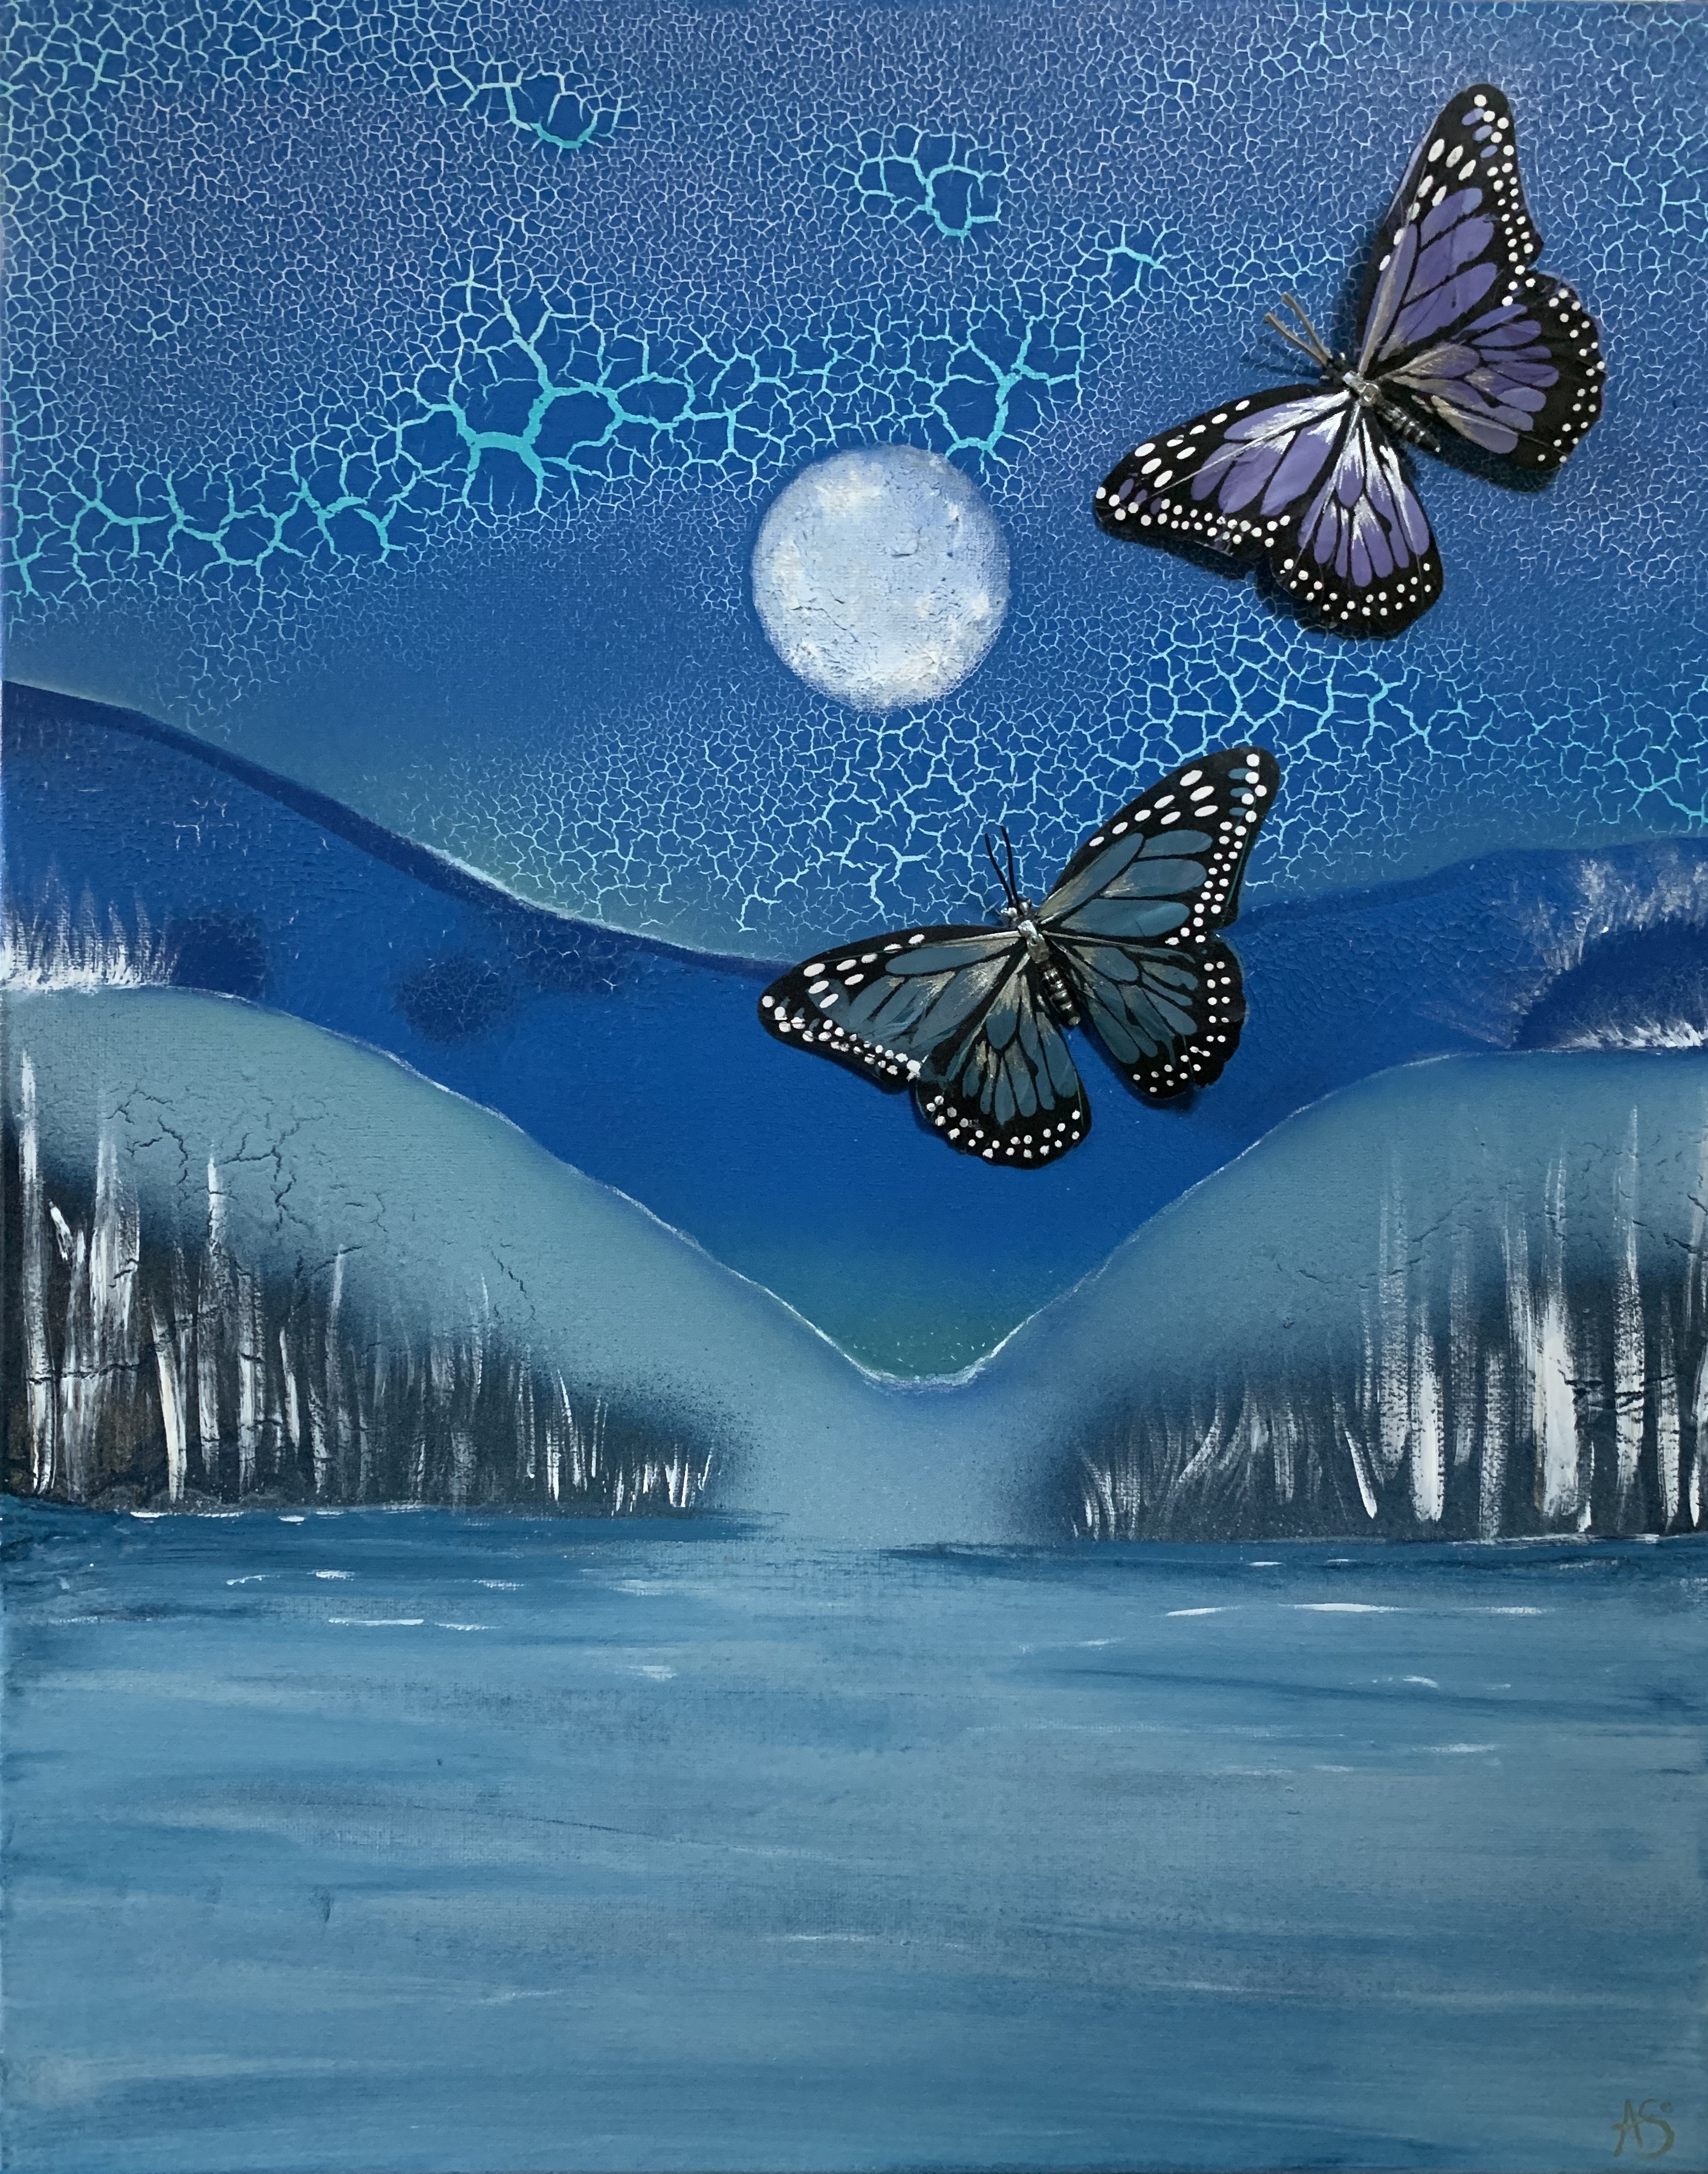 surreal landscape with surreal butterflies